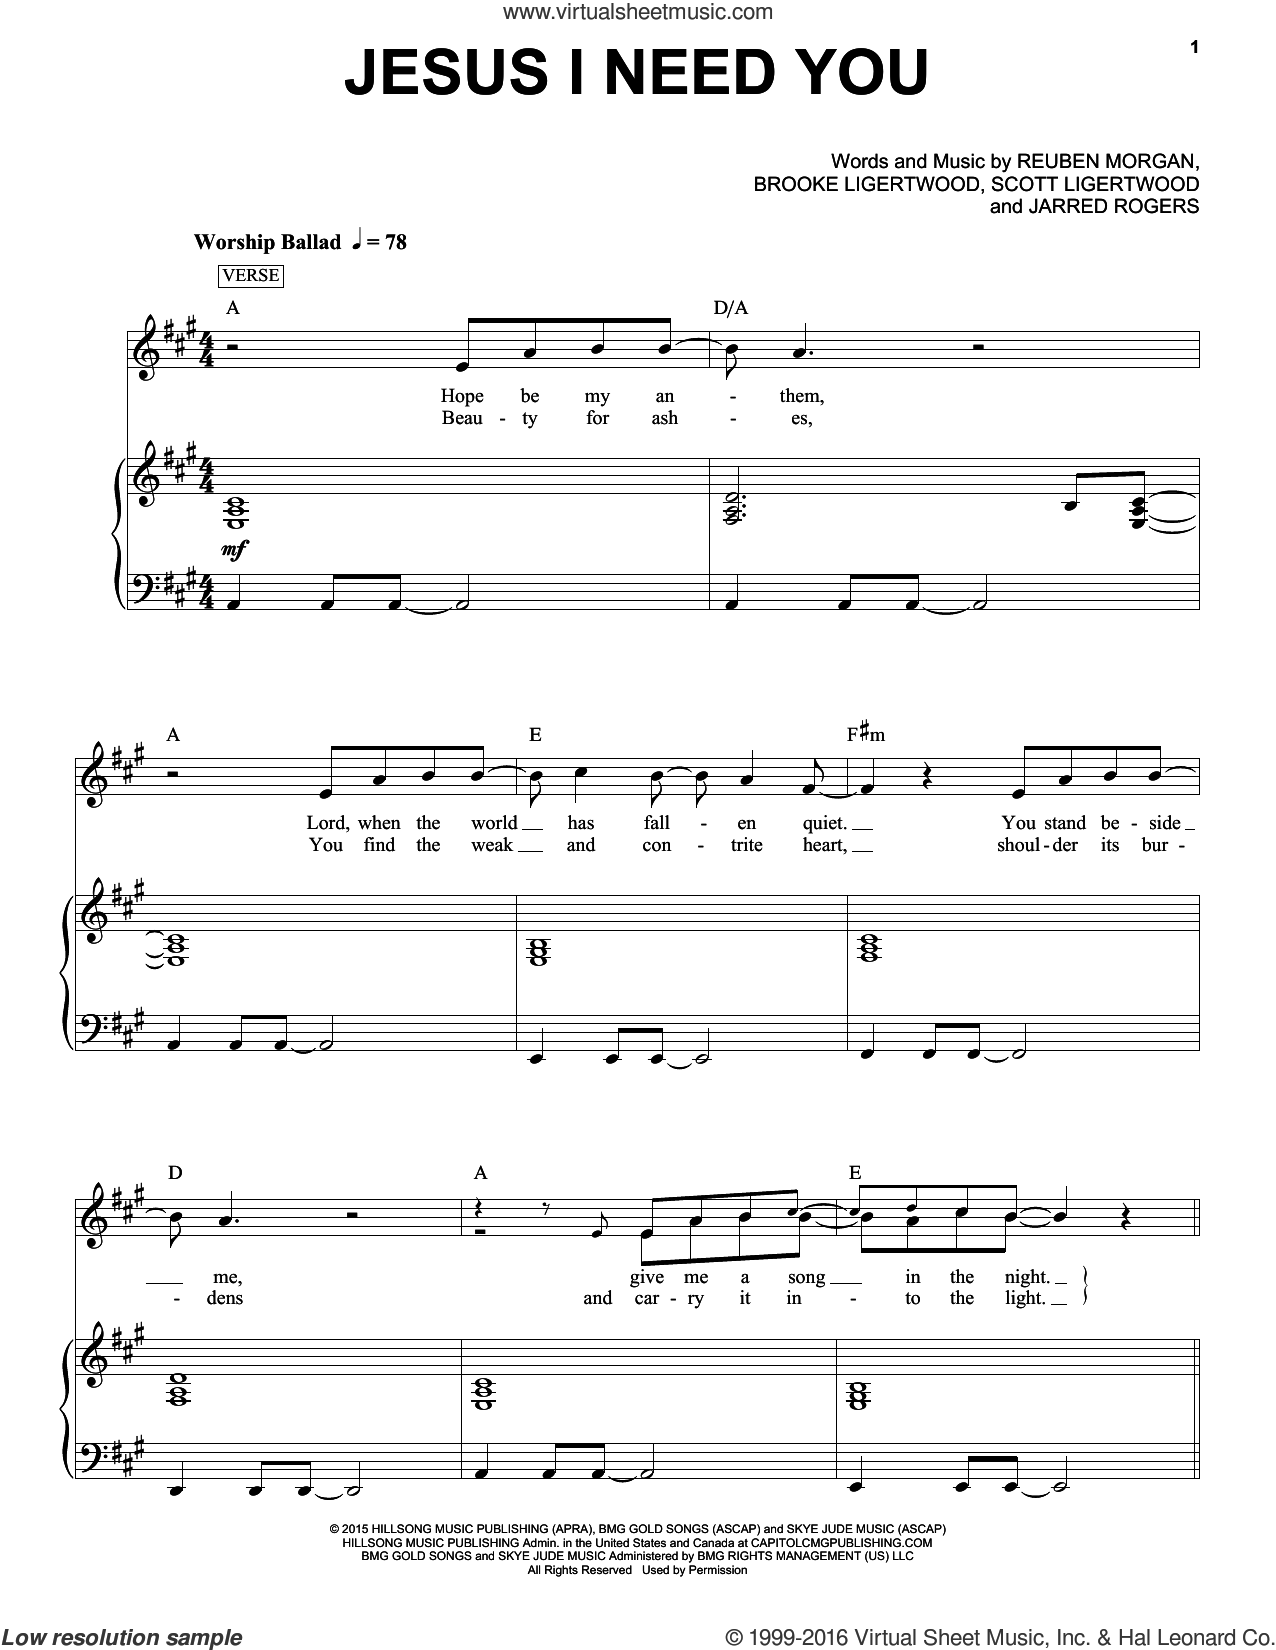 Jesus I Need You sheet music for voice and piano by Scott Ligertwood, Brooke Ligertwood and Reuben Morgan. Score Image Preview.